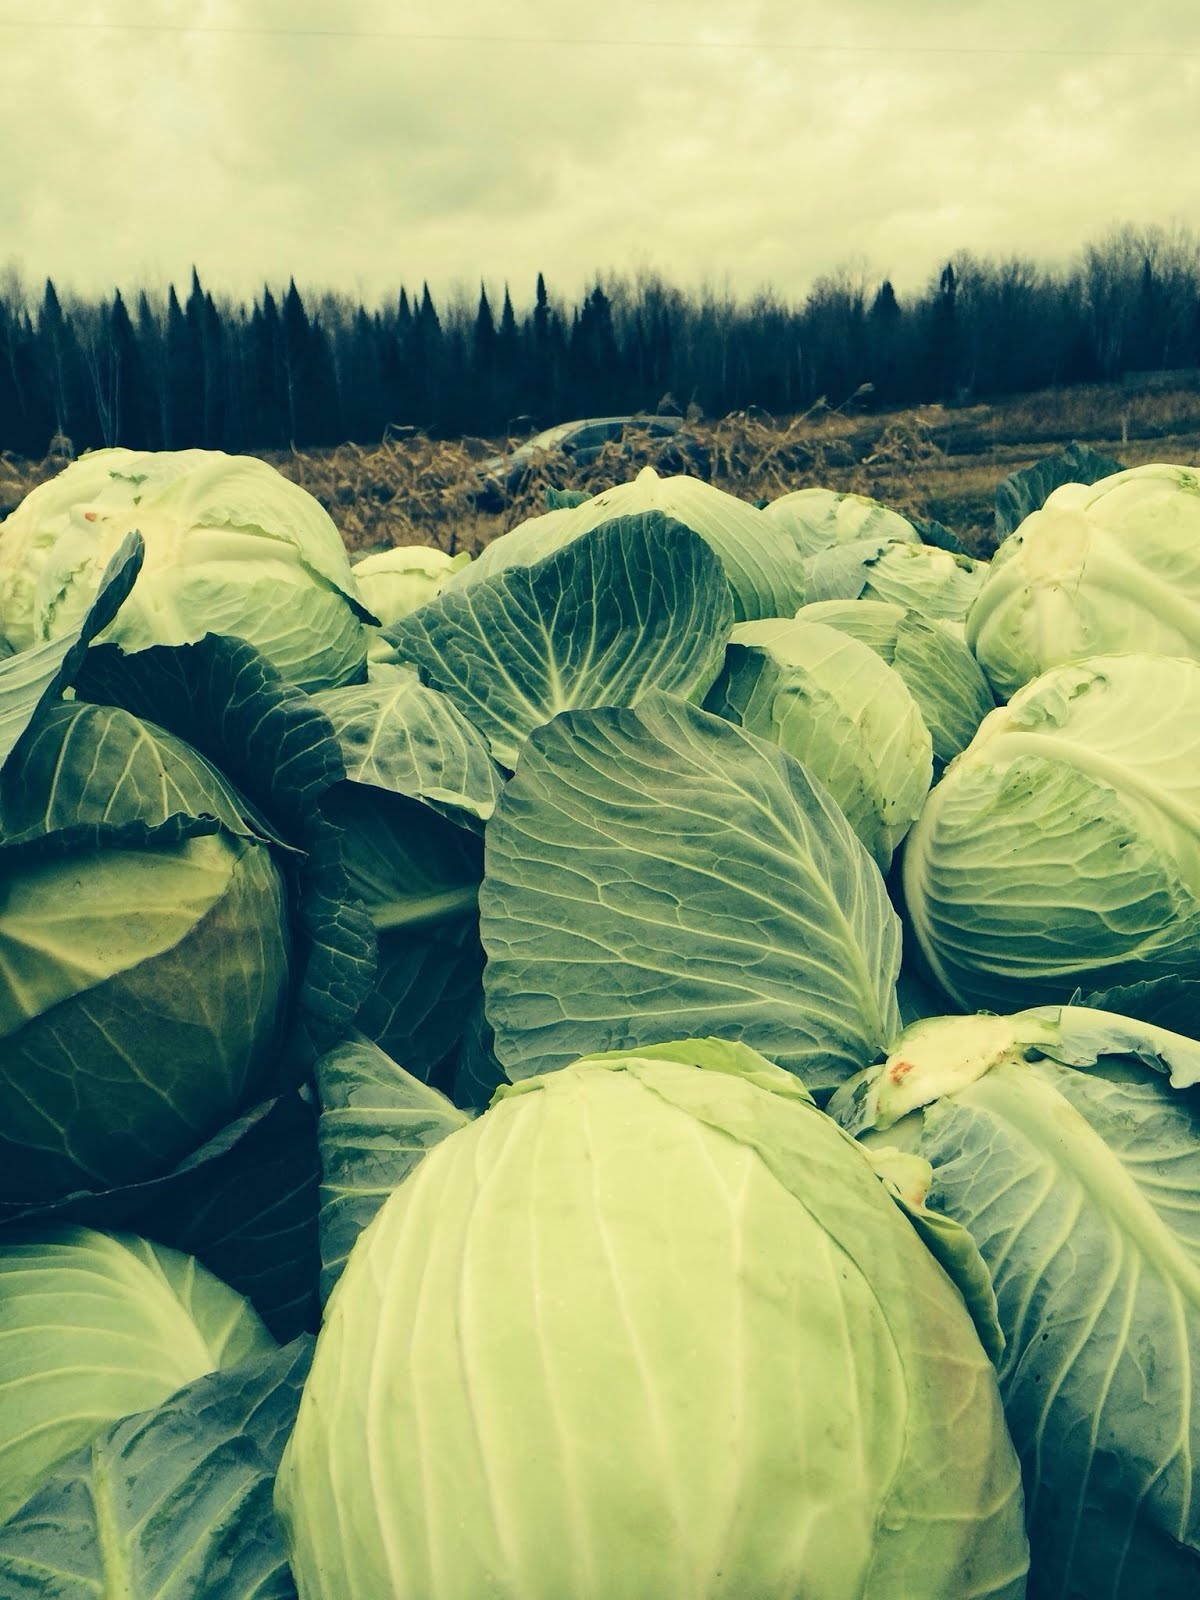 Farmer Dale's Cabbages